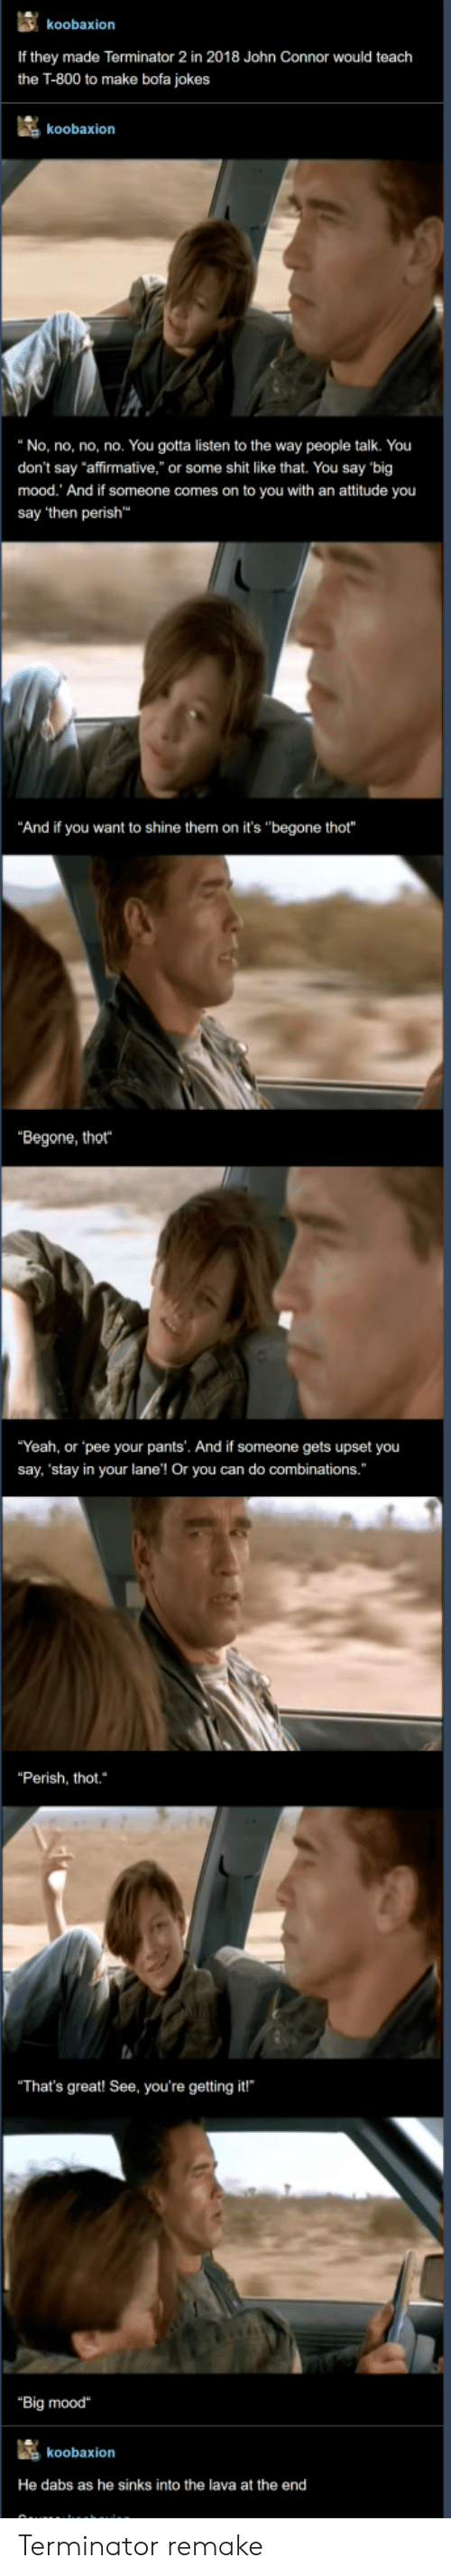 """The dab: koobaxion  If they made Terminator 2 in 2018 John Connor would teach  the T-800 to make bofa jokes  koobaxion  """"No, no, no, no. You gotta listen to the way people talk. You  don't say """"affirmative,"""" or some shit like that. You say 'big  mood. And if someone comes on to you with an attitude you  say 'then perish  """"And if you want to shine them on it's """"begone thot""""  """"Begone, thot  """"Yeah, or pee your pants'. And if someone gets upset you  say, 'stay in your lane'! Or you can do combinations.  """"Perish, thot.  That's great! See, you're getting it!  """"Big mood  koobaxion  He dabs as he sinks into the lava at the end Terminator remake"""